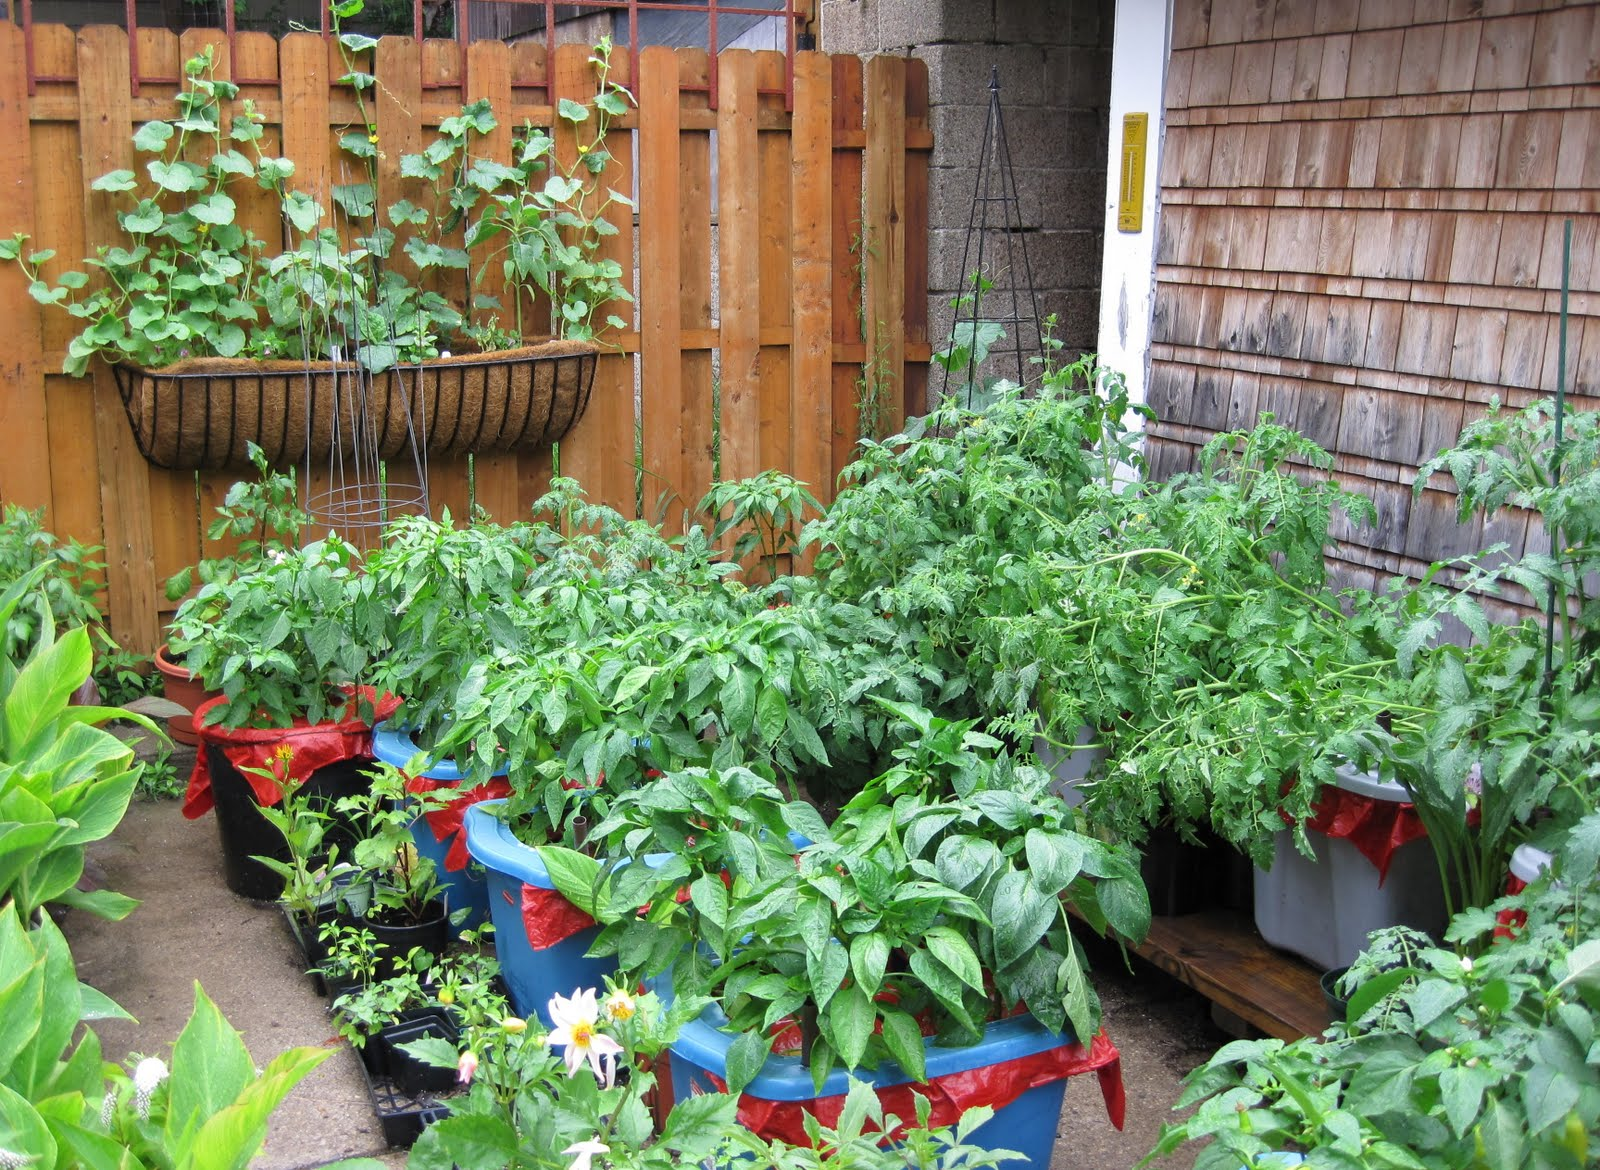 Big Gardens in Small Spaces: Adventures in Container Gardening